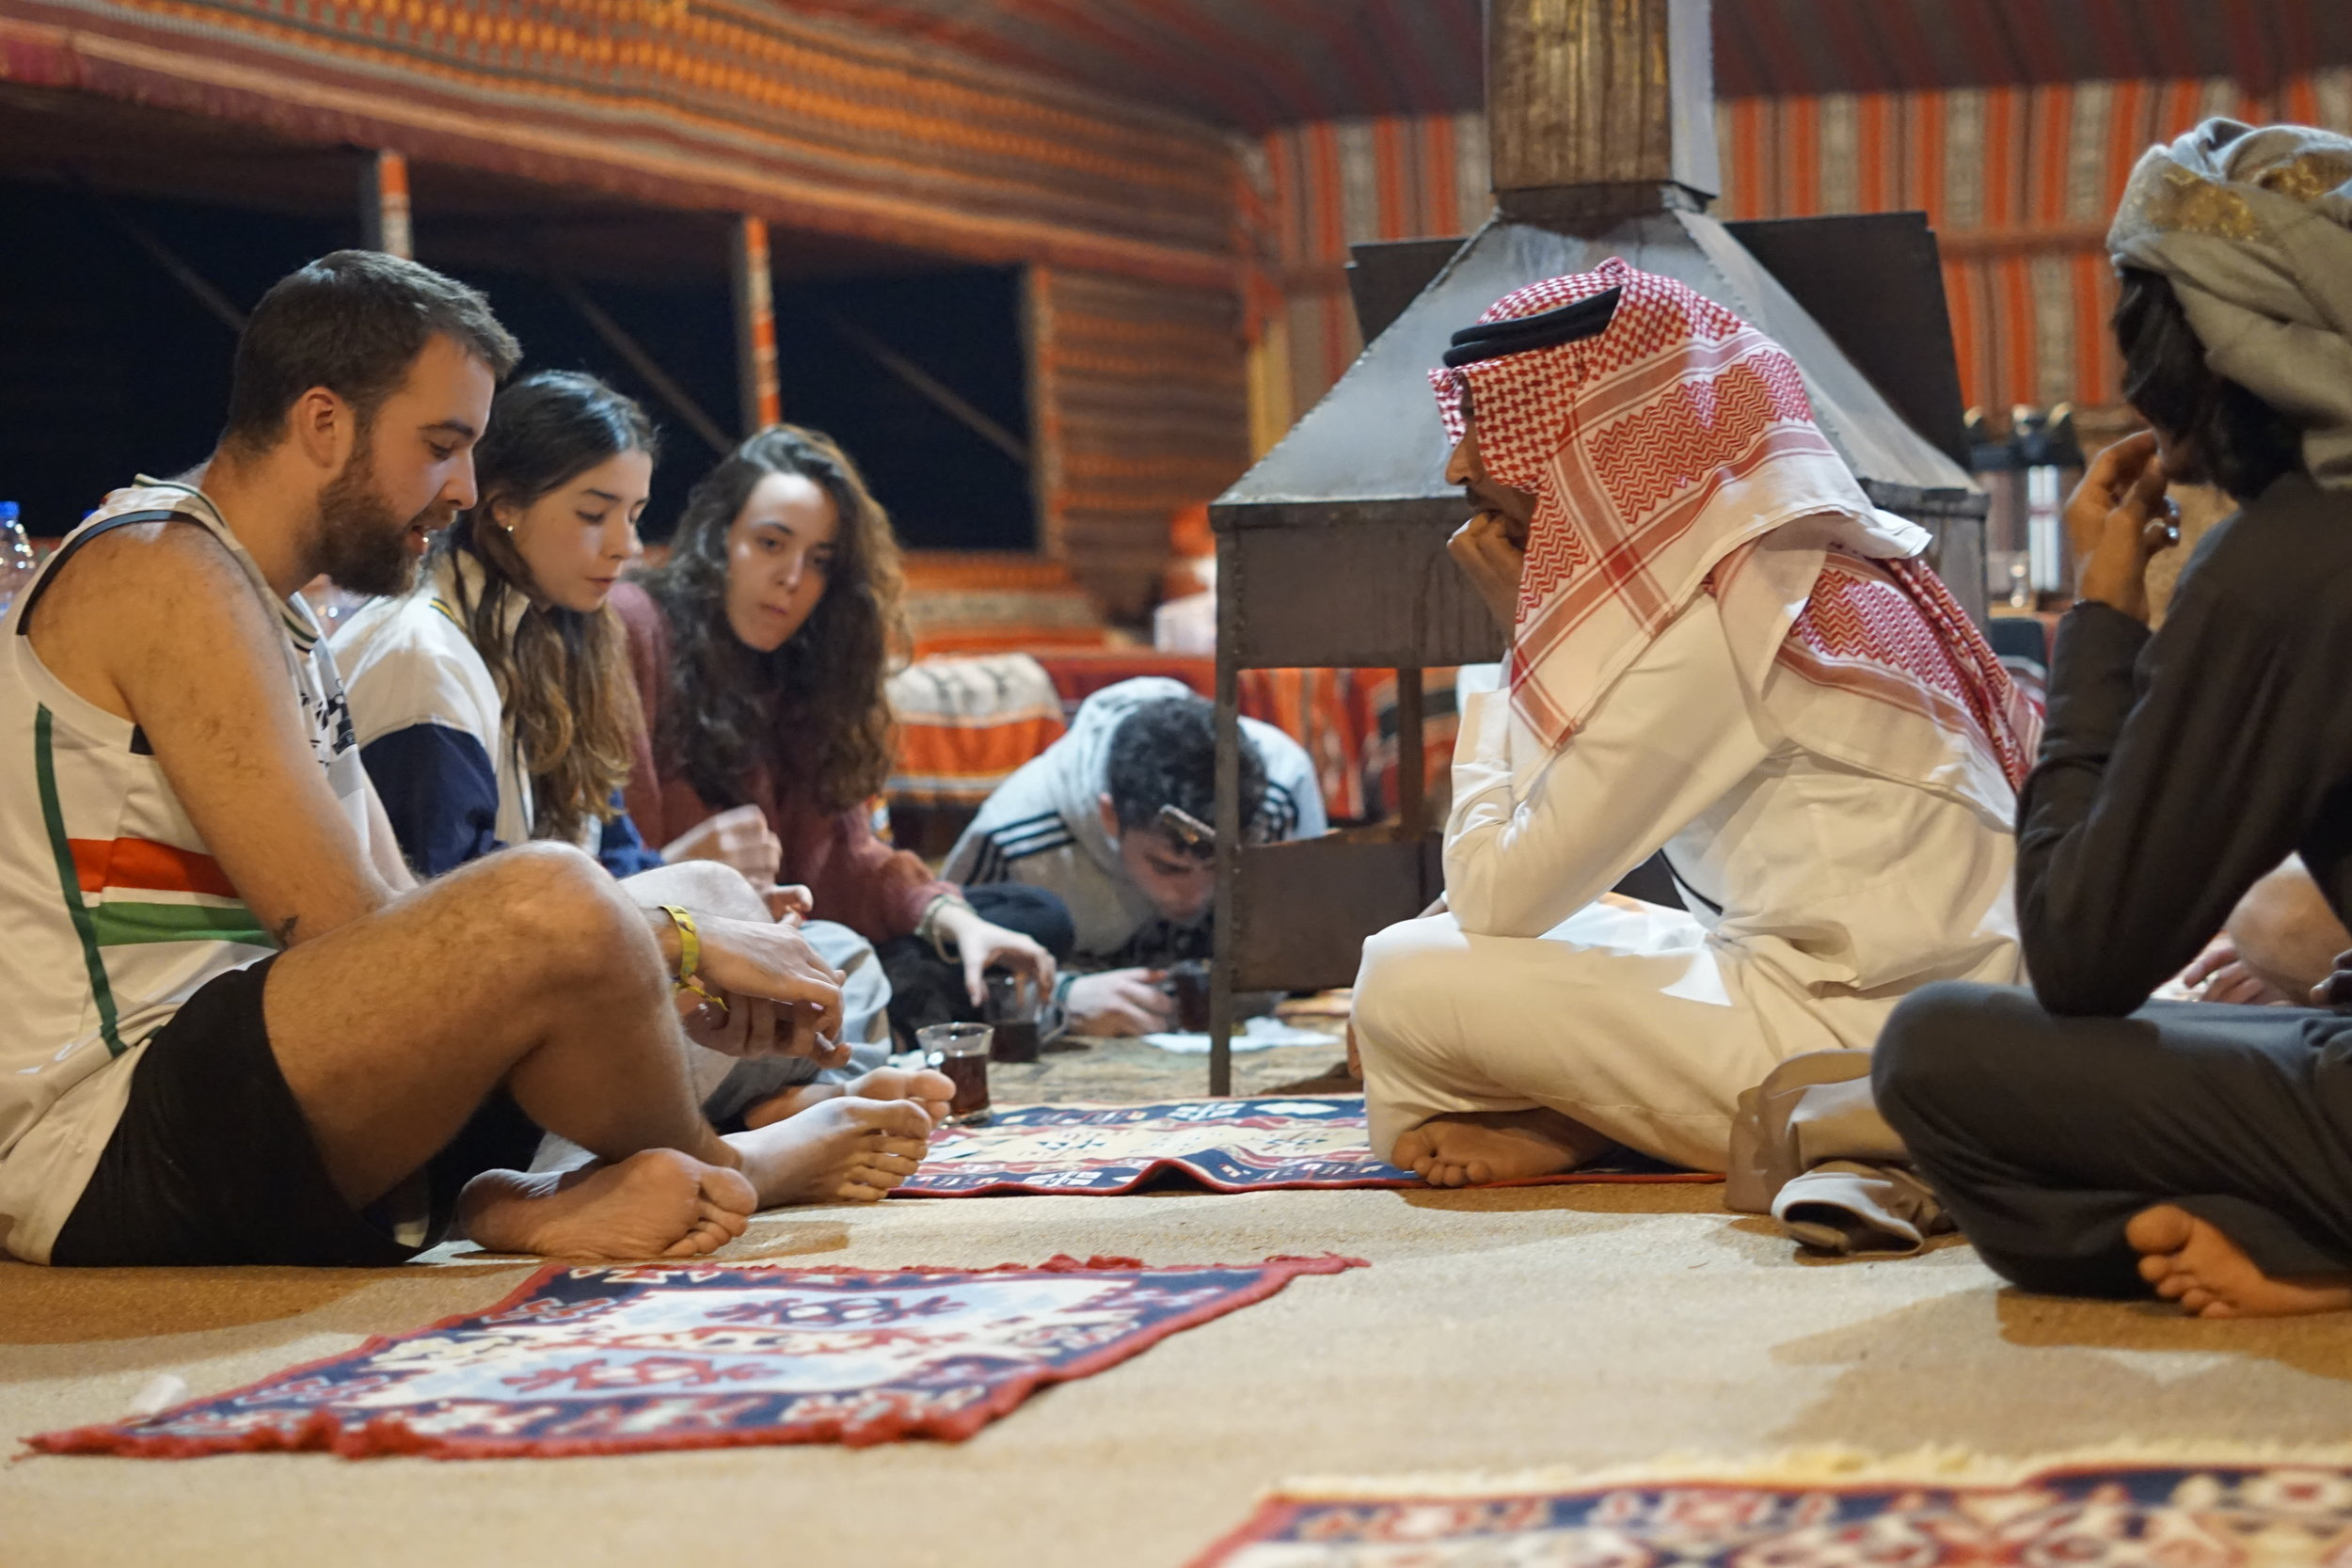 Copy of Socializing with the Bedouins.